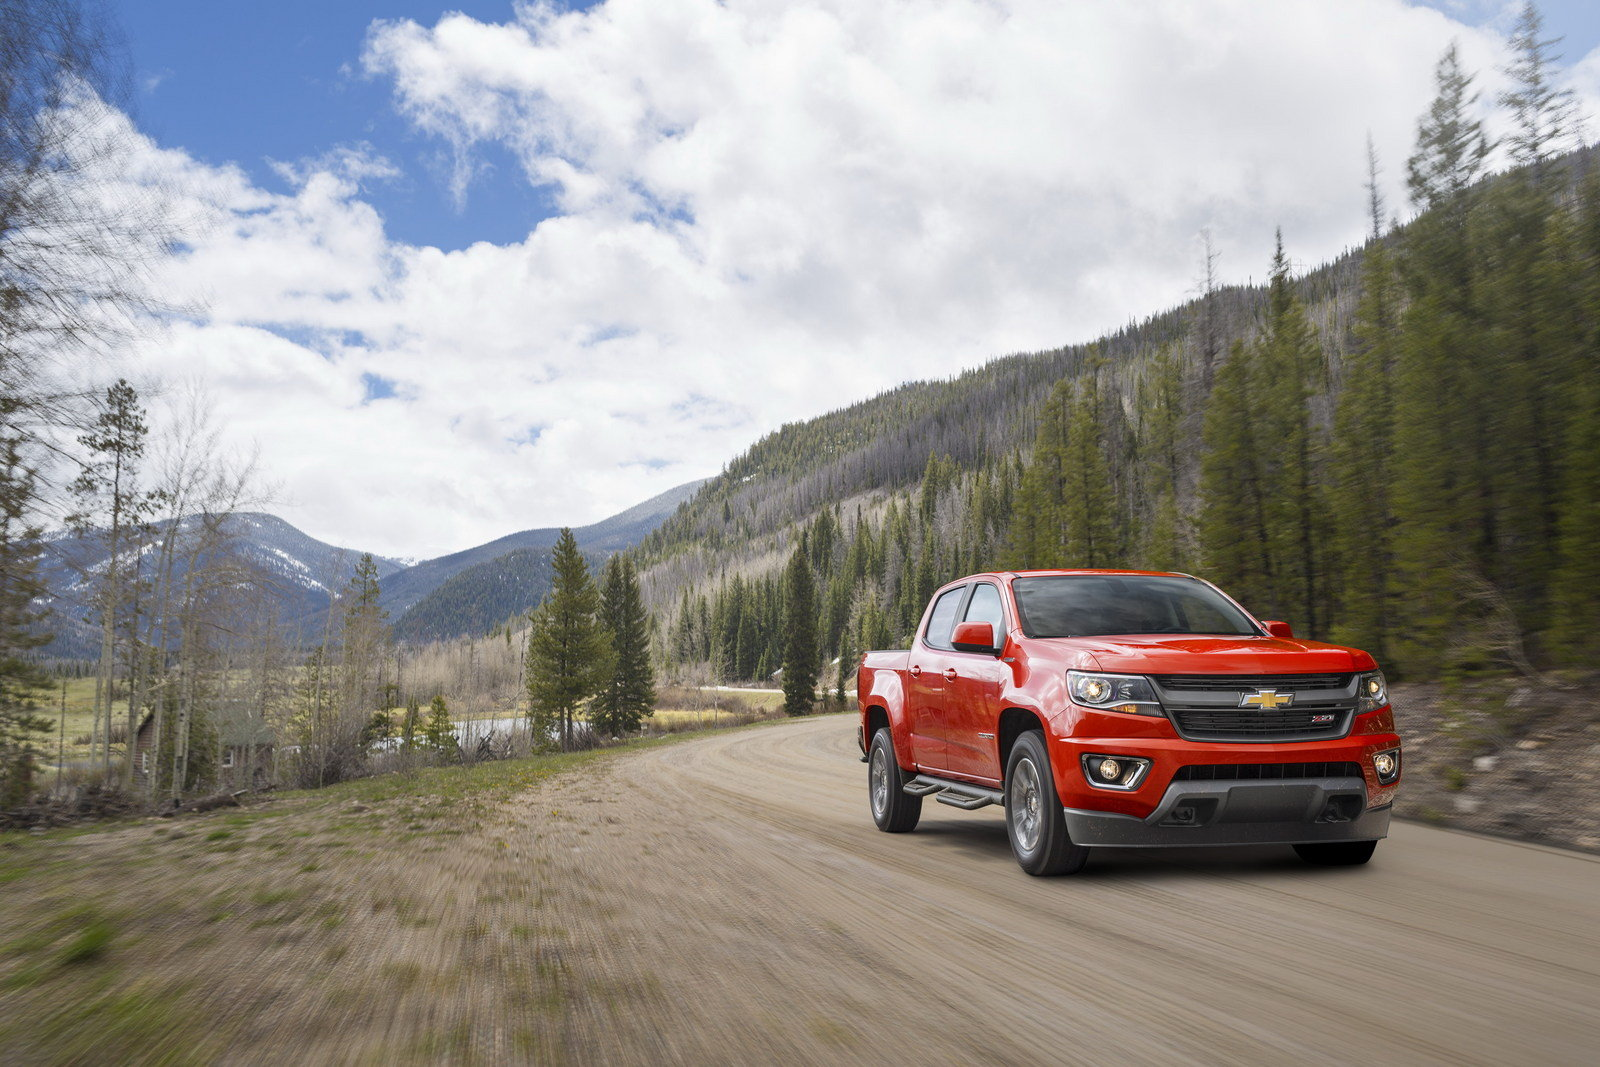 2016 chevrolet colorado duramax diesel picture 638250 truck review